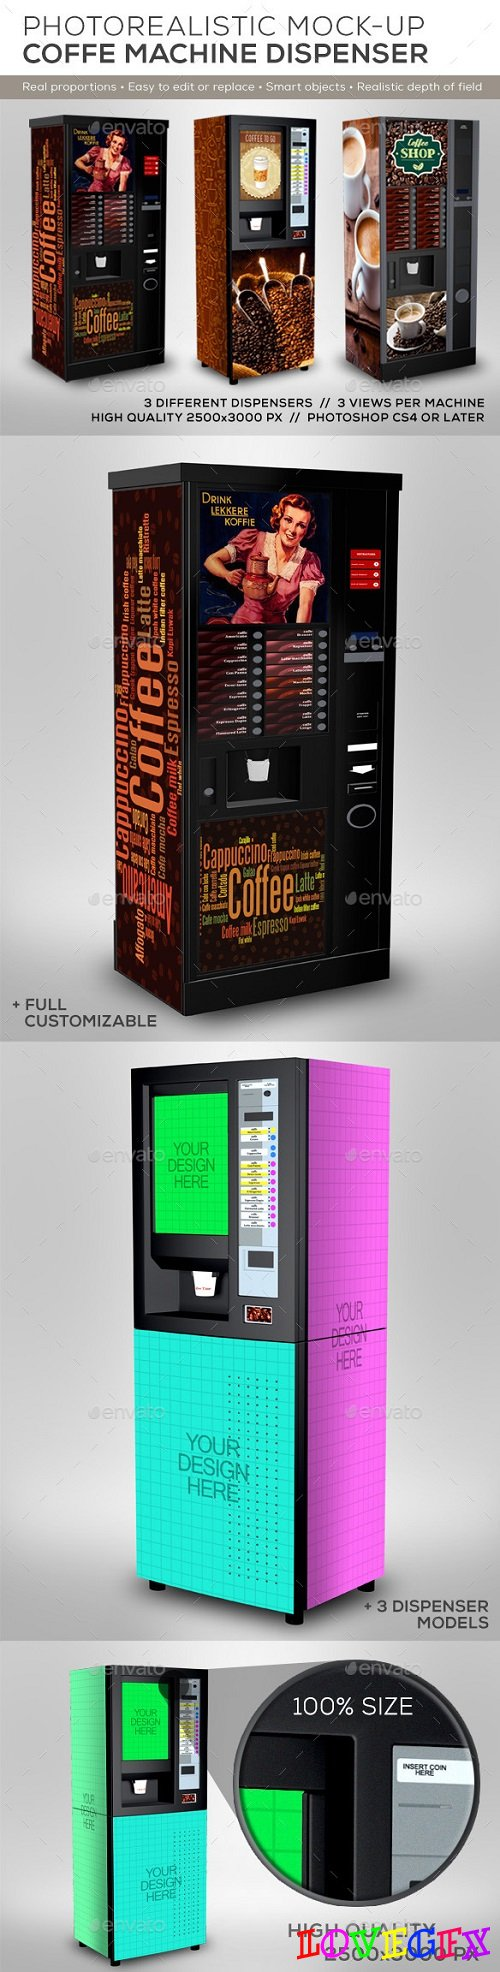 Coffee Cup Dispenser Machine Mock-Up - 8819603